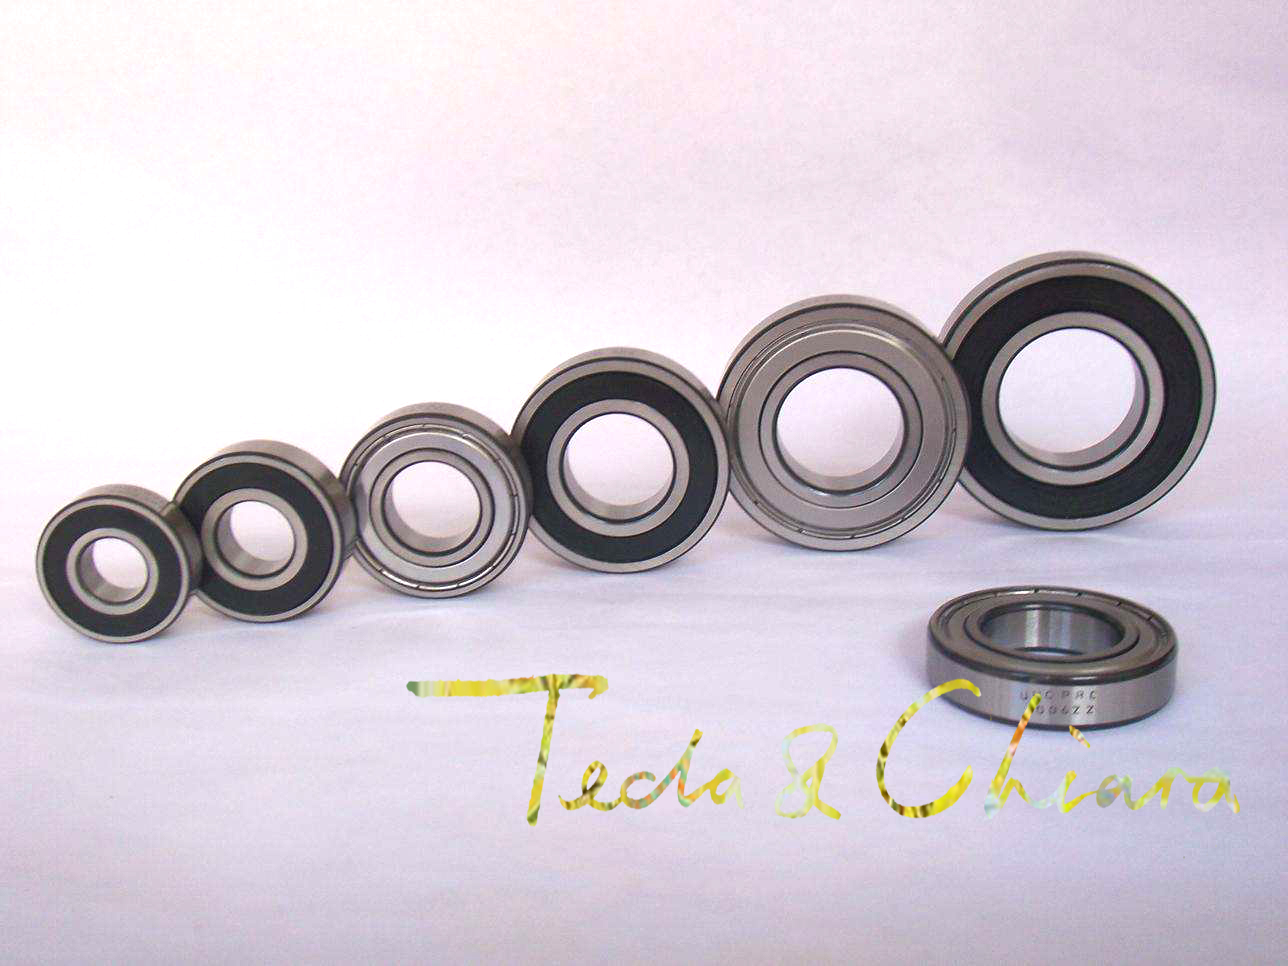 6200 6200ZZ 6200RS 6200-2Z 6200Z 6200-2RS ZZ RS RZ 2RZ Deep Groove Ball Bearings 10 x 30 x 9mm High Quality gcr15 6328 zz or 6328 2rs 140x300x62mm high precision deep groove ball bearings abec 1 p0